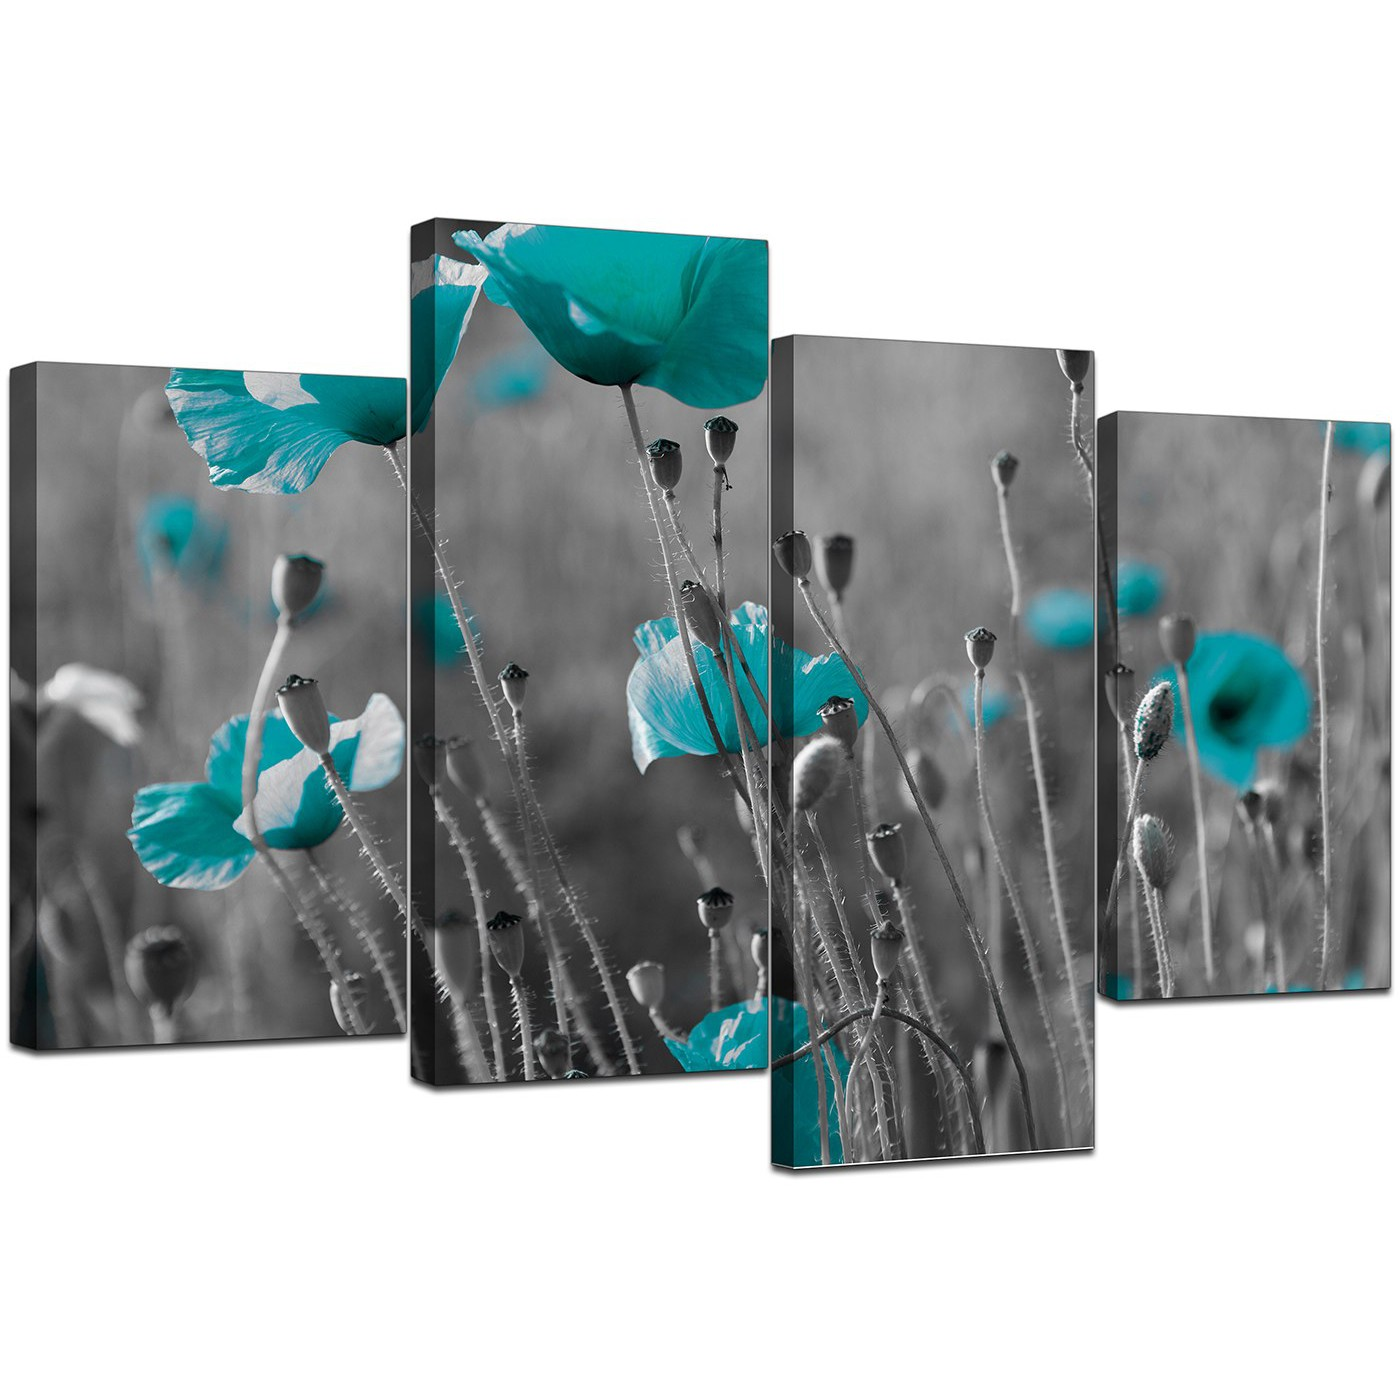 Canvas Art of Teal Poppies in Black & White for your fice